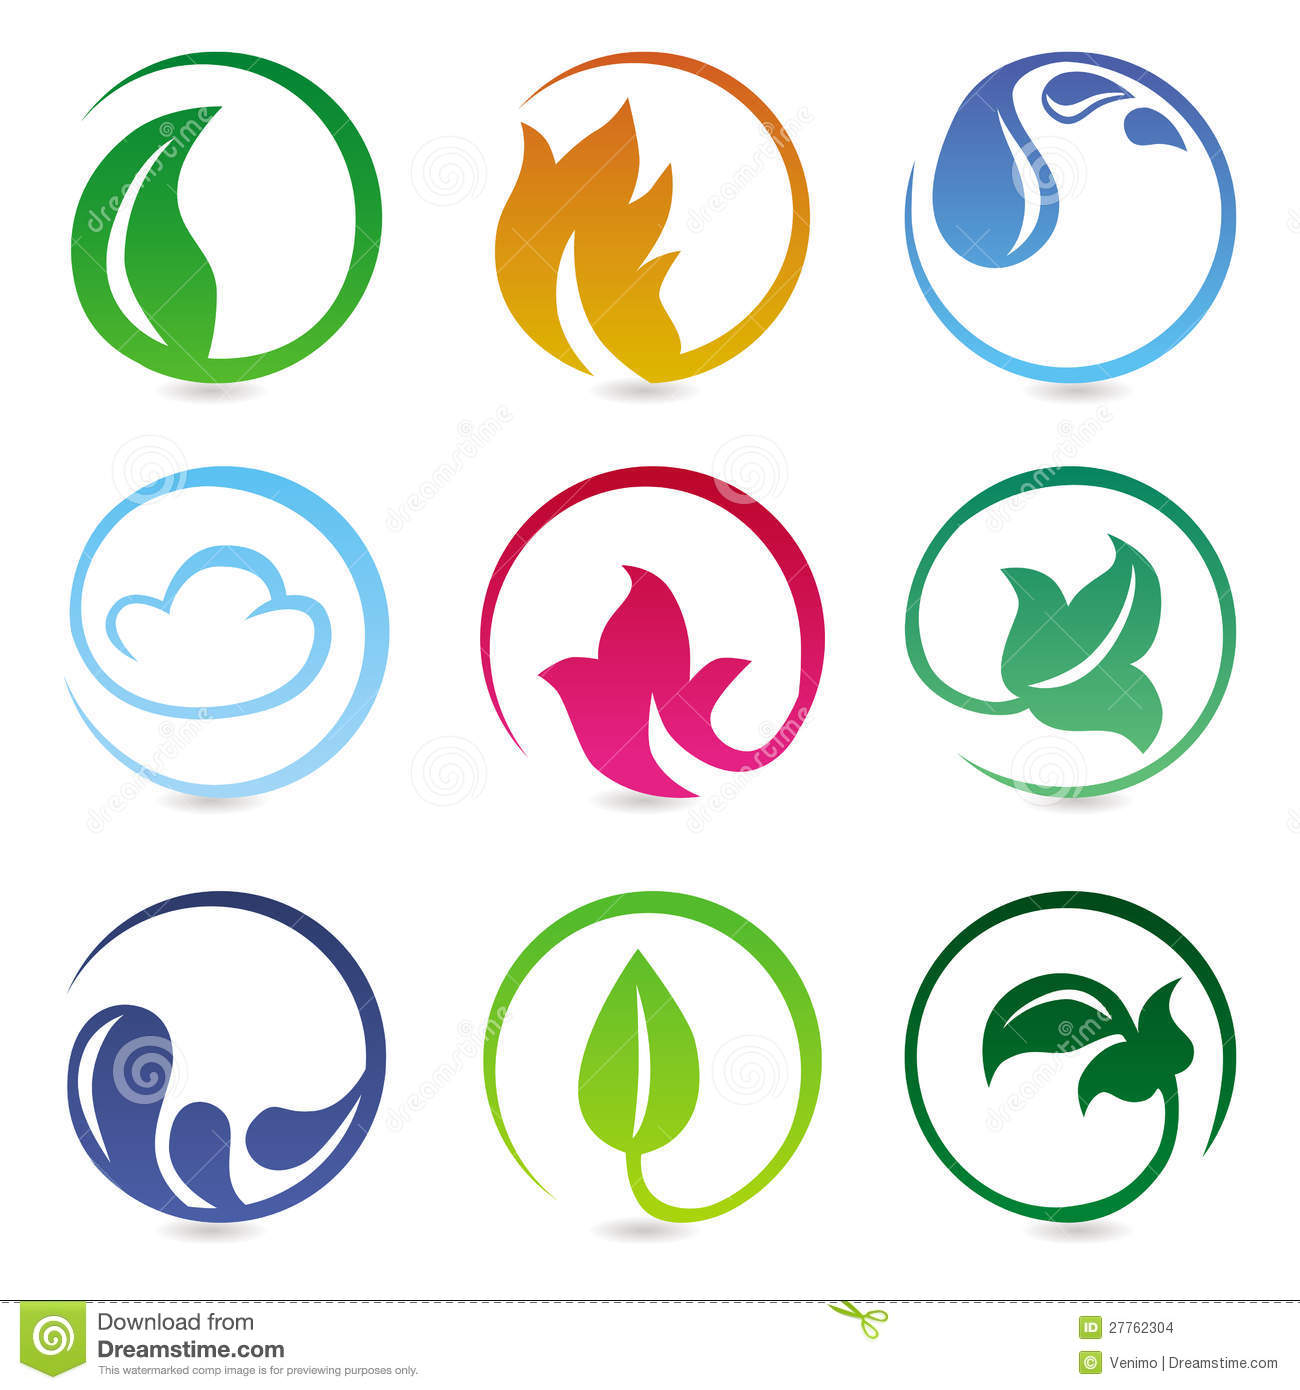 Elements For Design : Vector design elements with nature signs stock